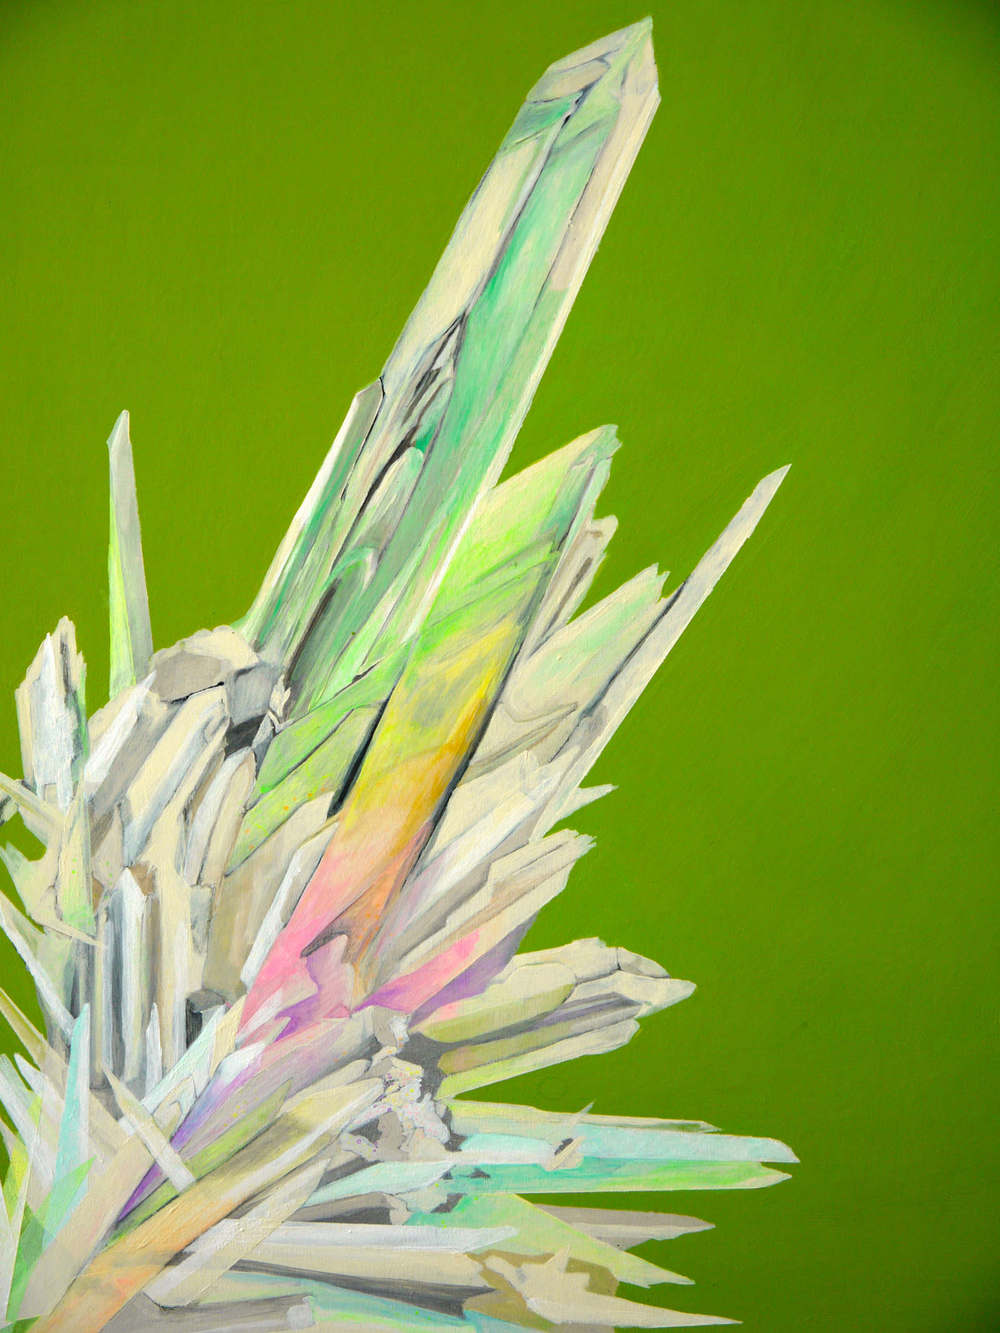 Rainbow-Crystal_1600_c.jpg